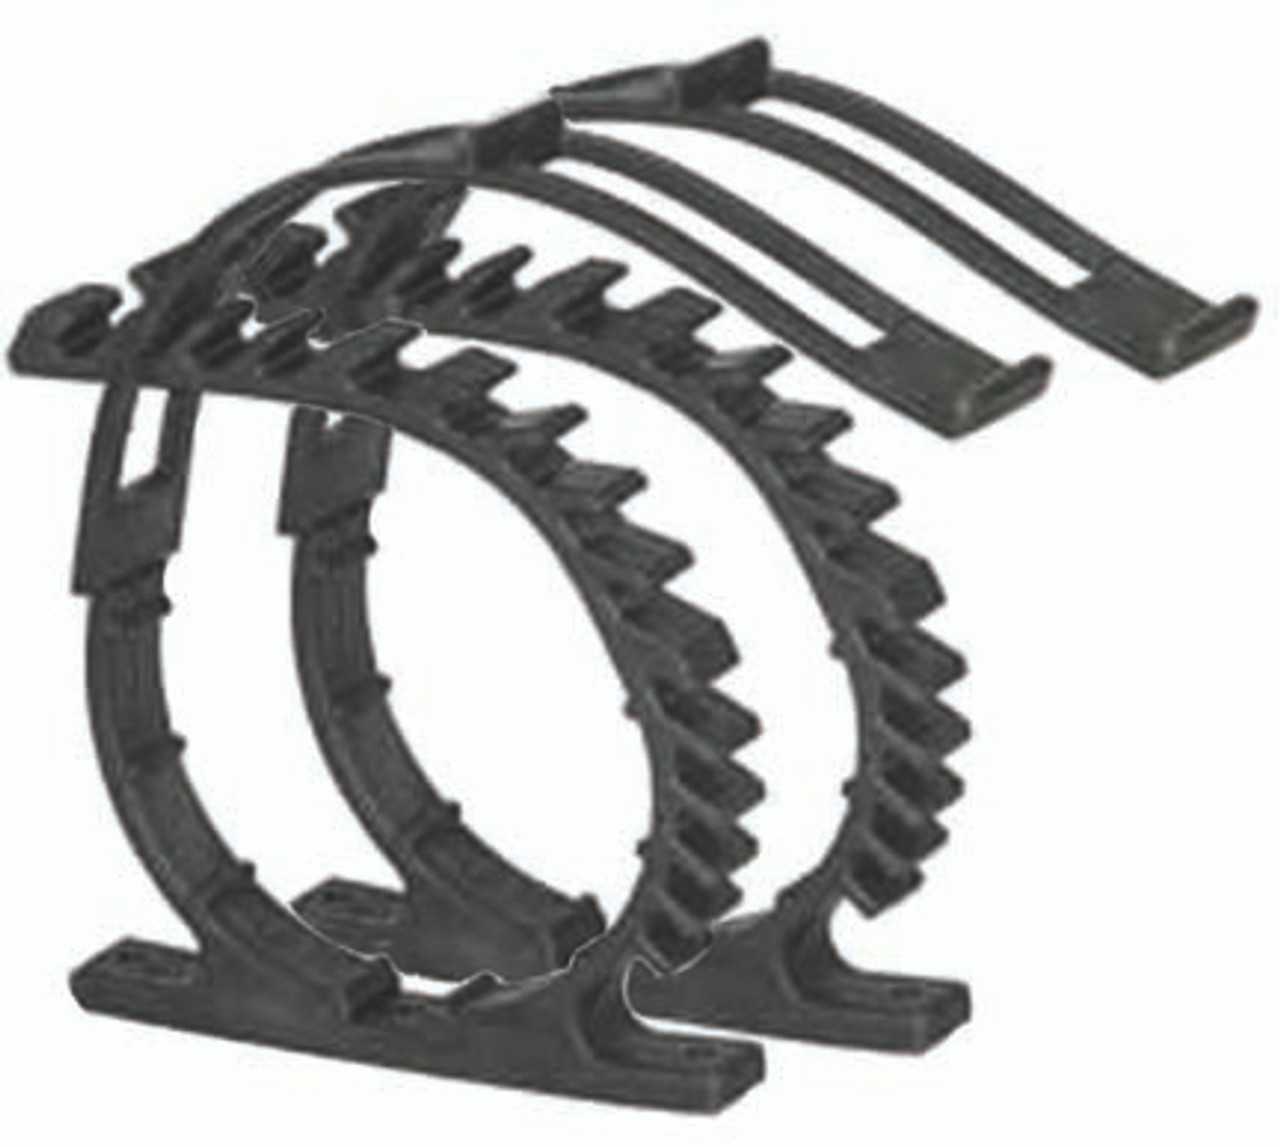 RCLAMP-L --- Rubber Clamps - Large